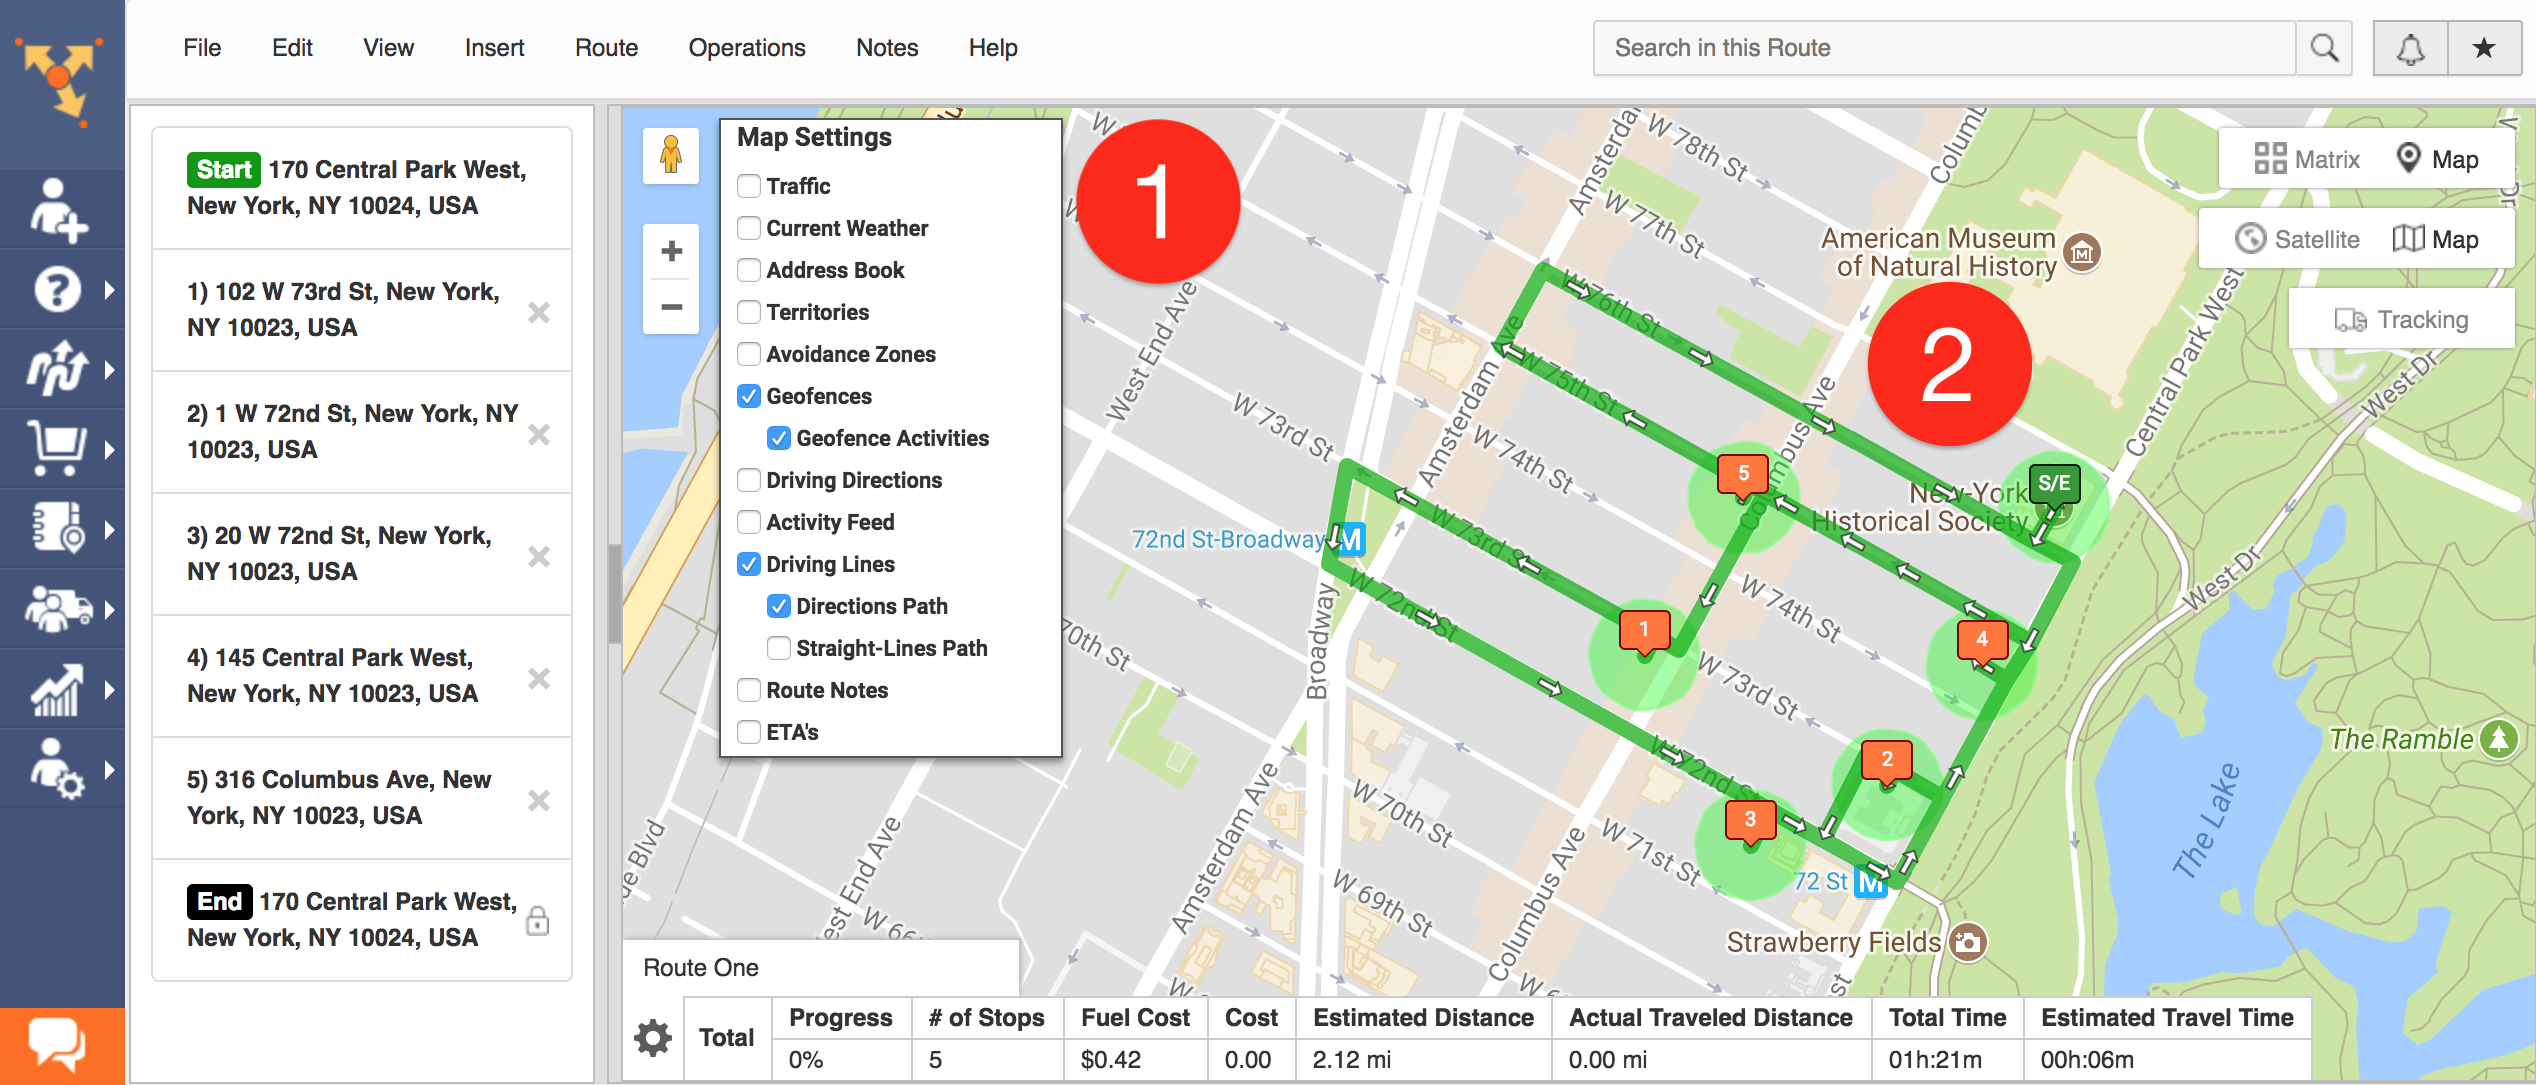 Using Route4Me's GPS tracking, you can set automatic visitation triggers with geofencing